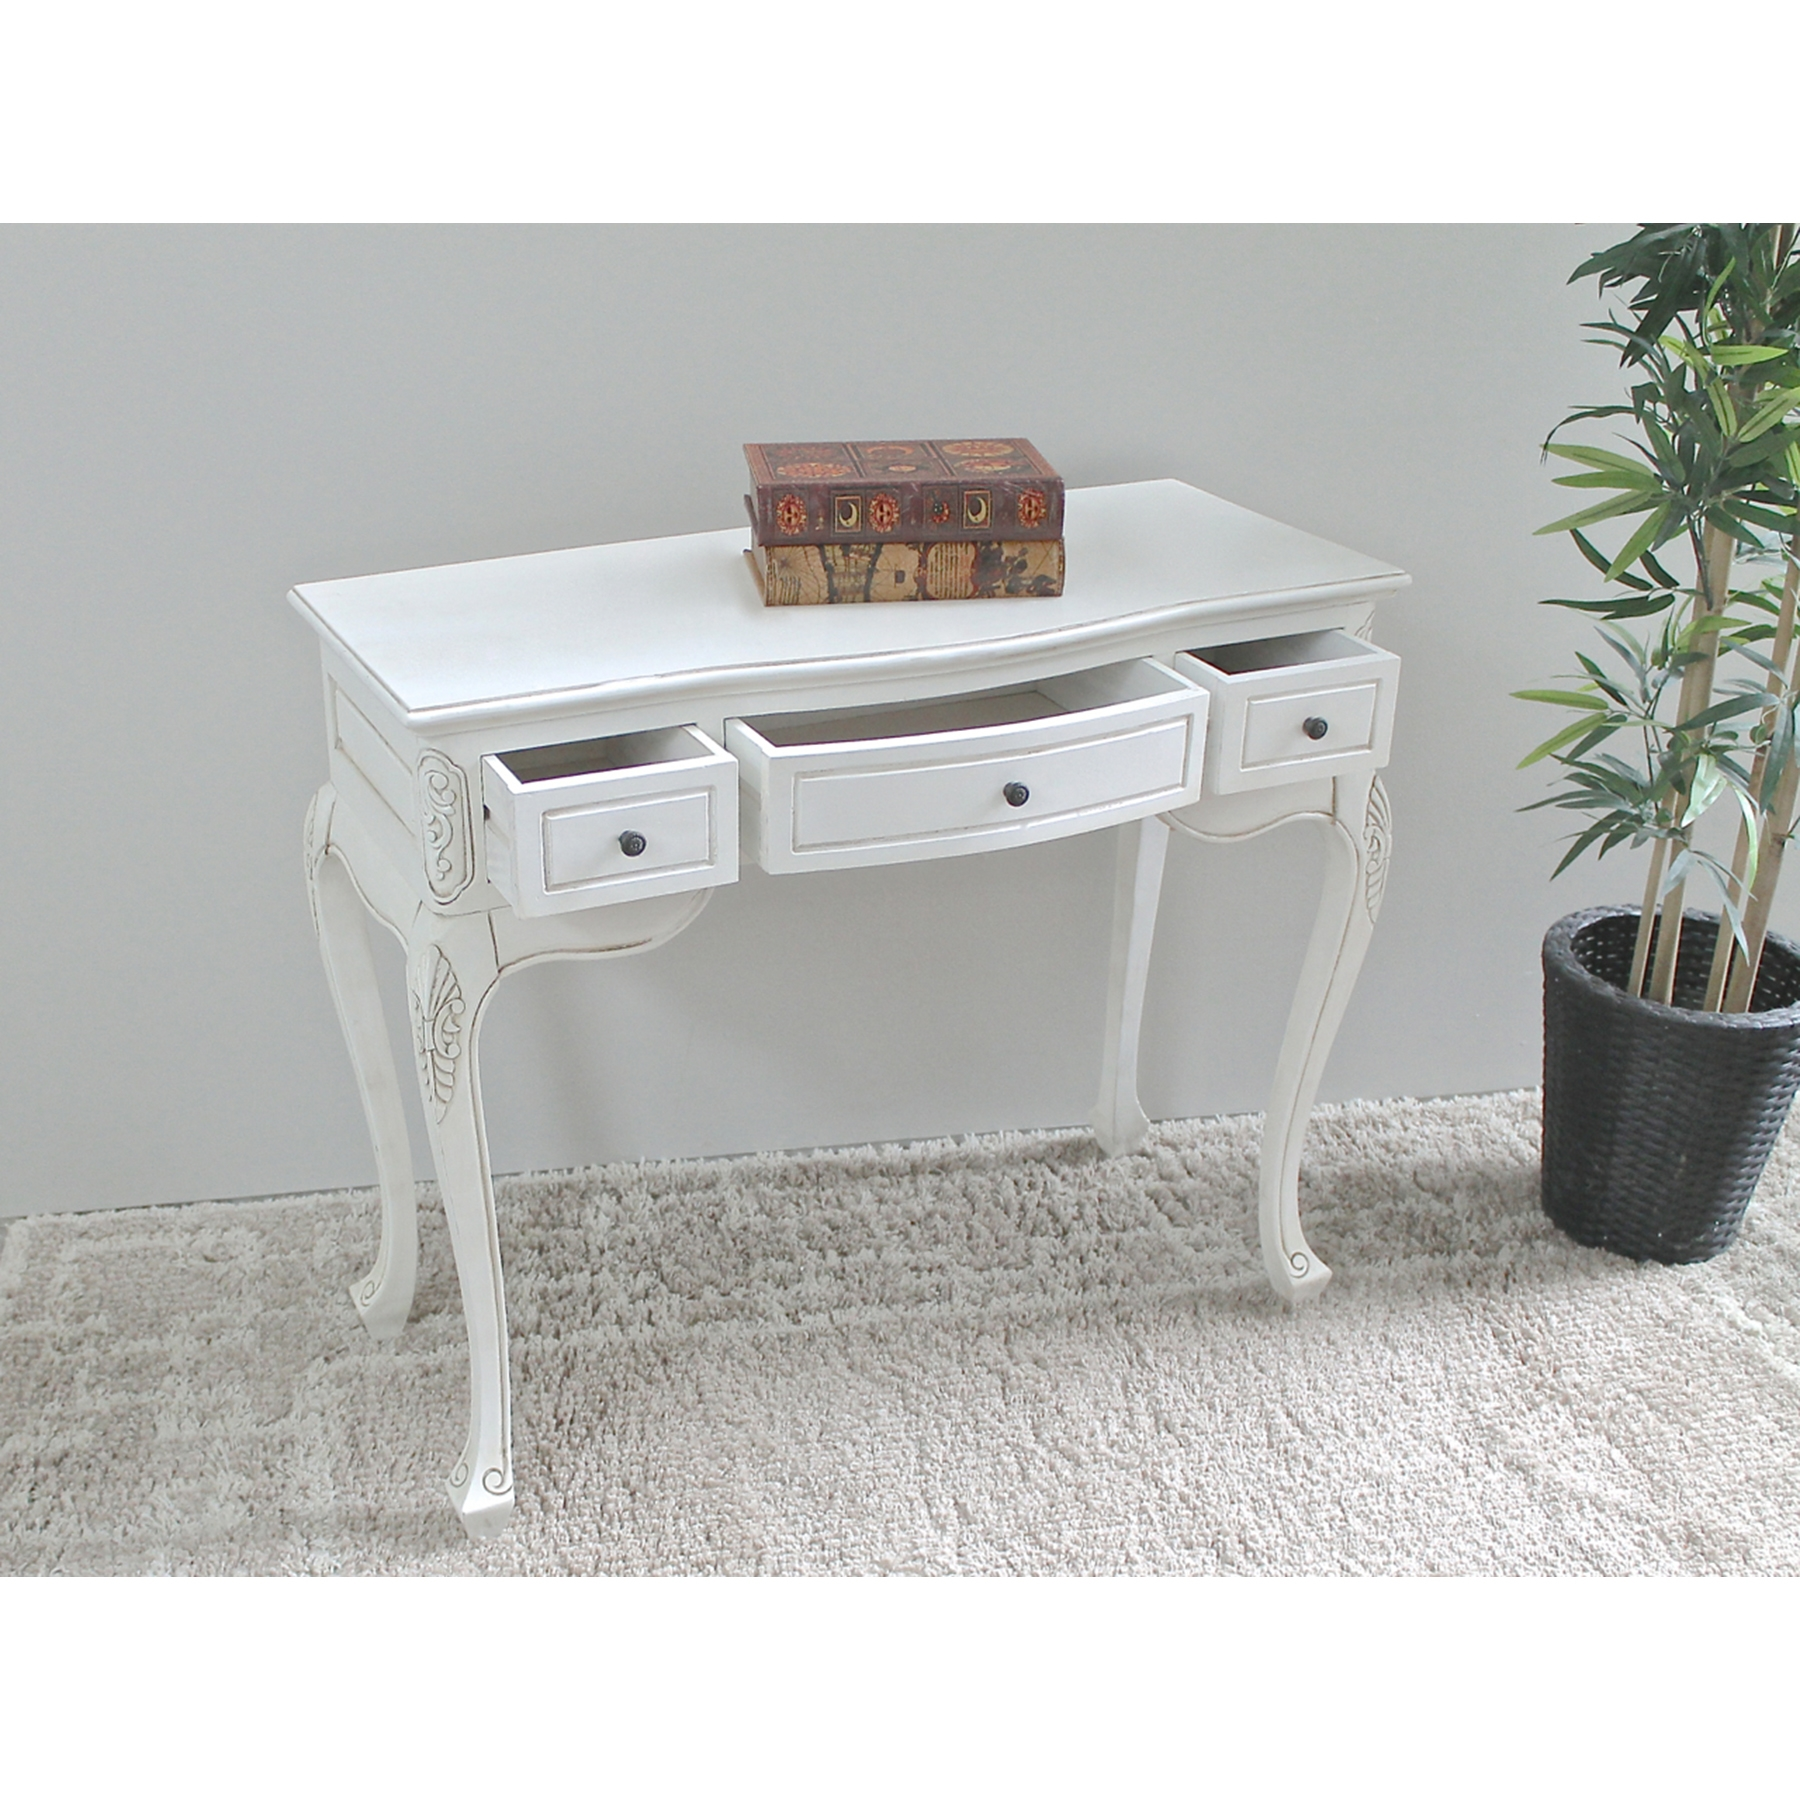 Antique White Vanity Table - 3 Drawers - INTC-3979-AW